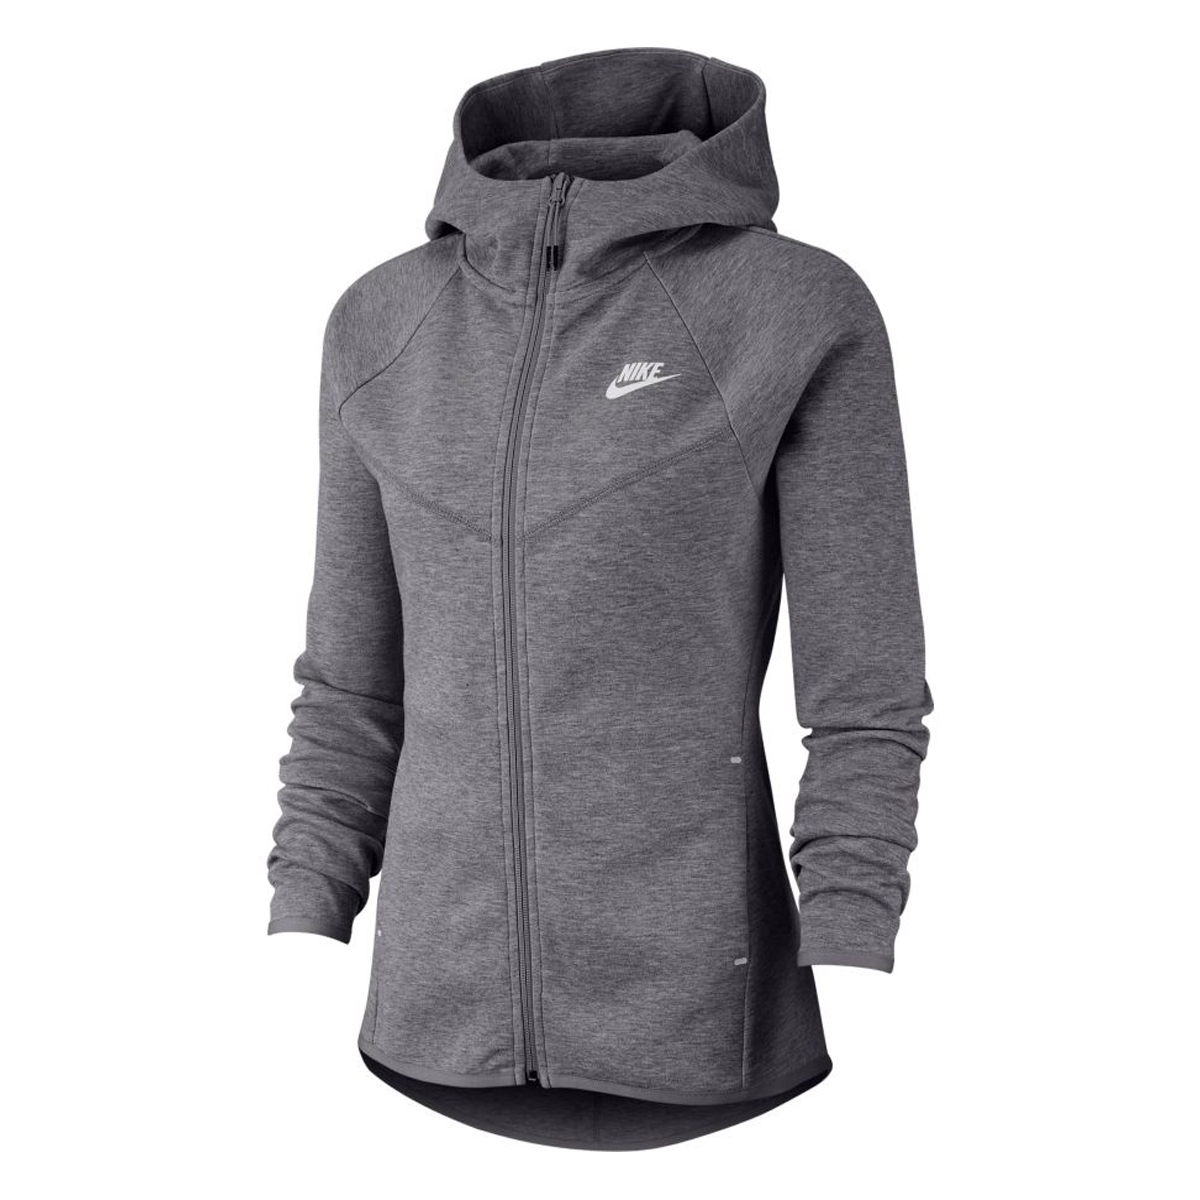 Nike Windrunner Full Zip Tech Fleece Hoodie Sweater